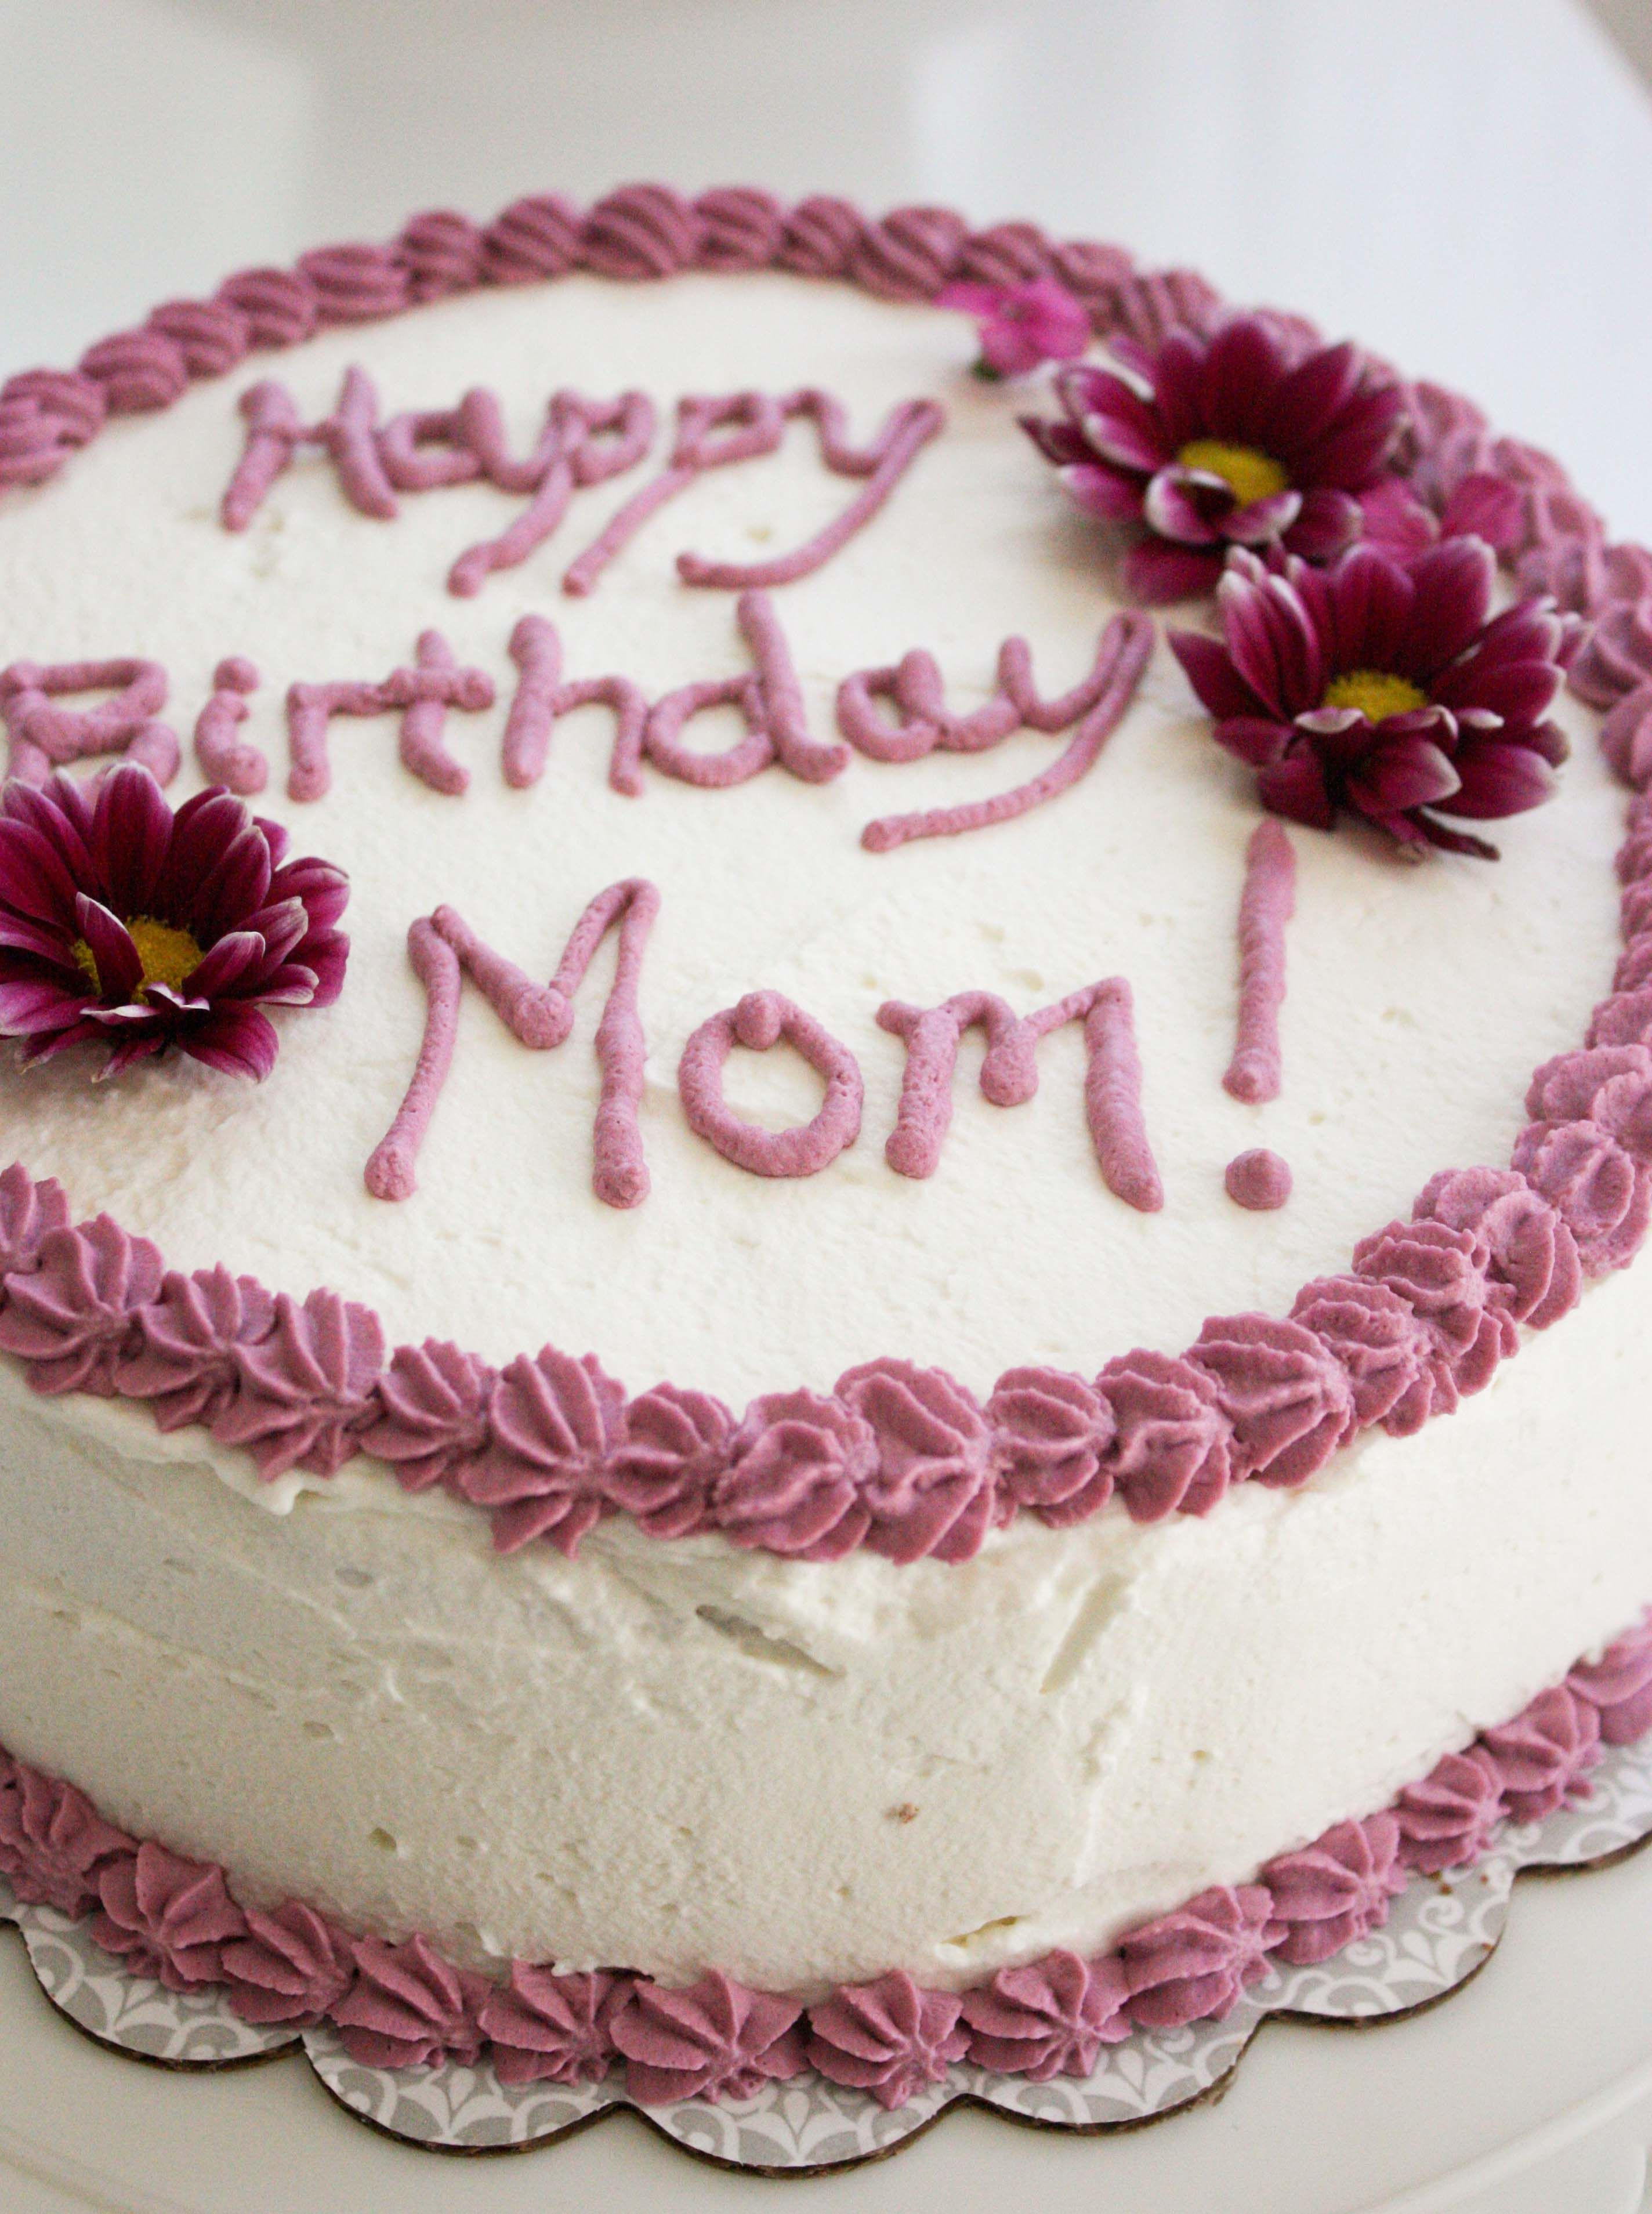 Excellent 27 Brilliant Picture Of Mom Birthday Cakes With Images Funny Birthday Cards Online Inifodamsfinfo